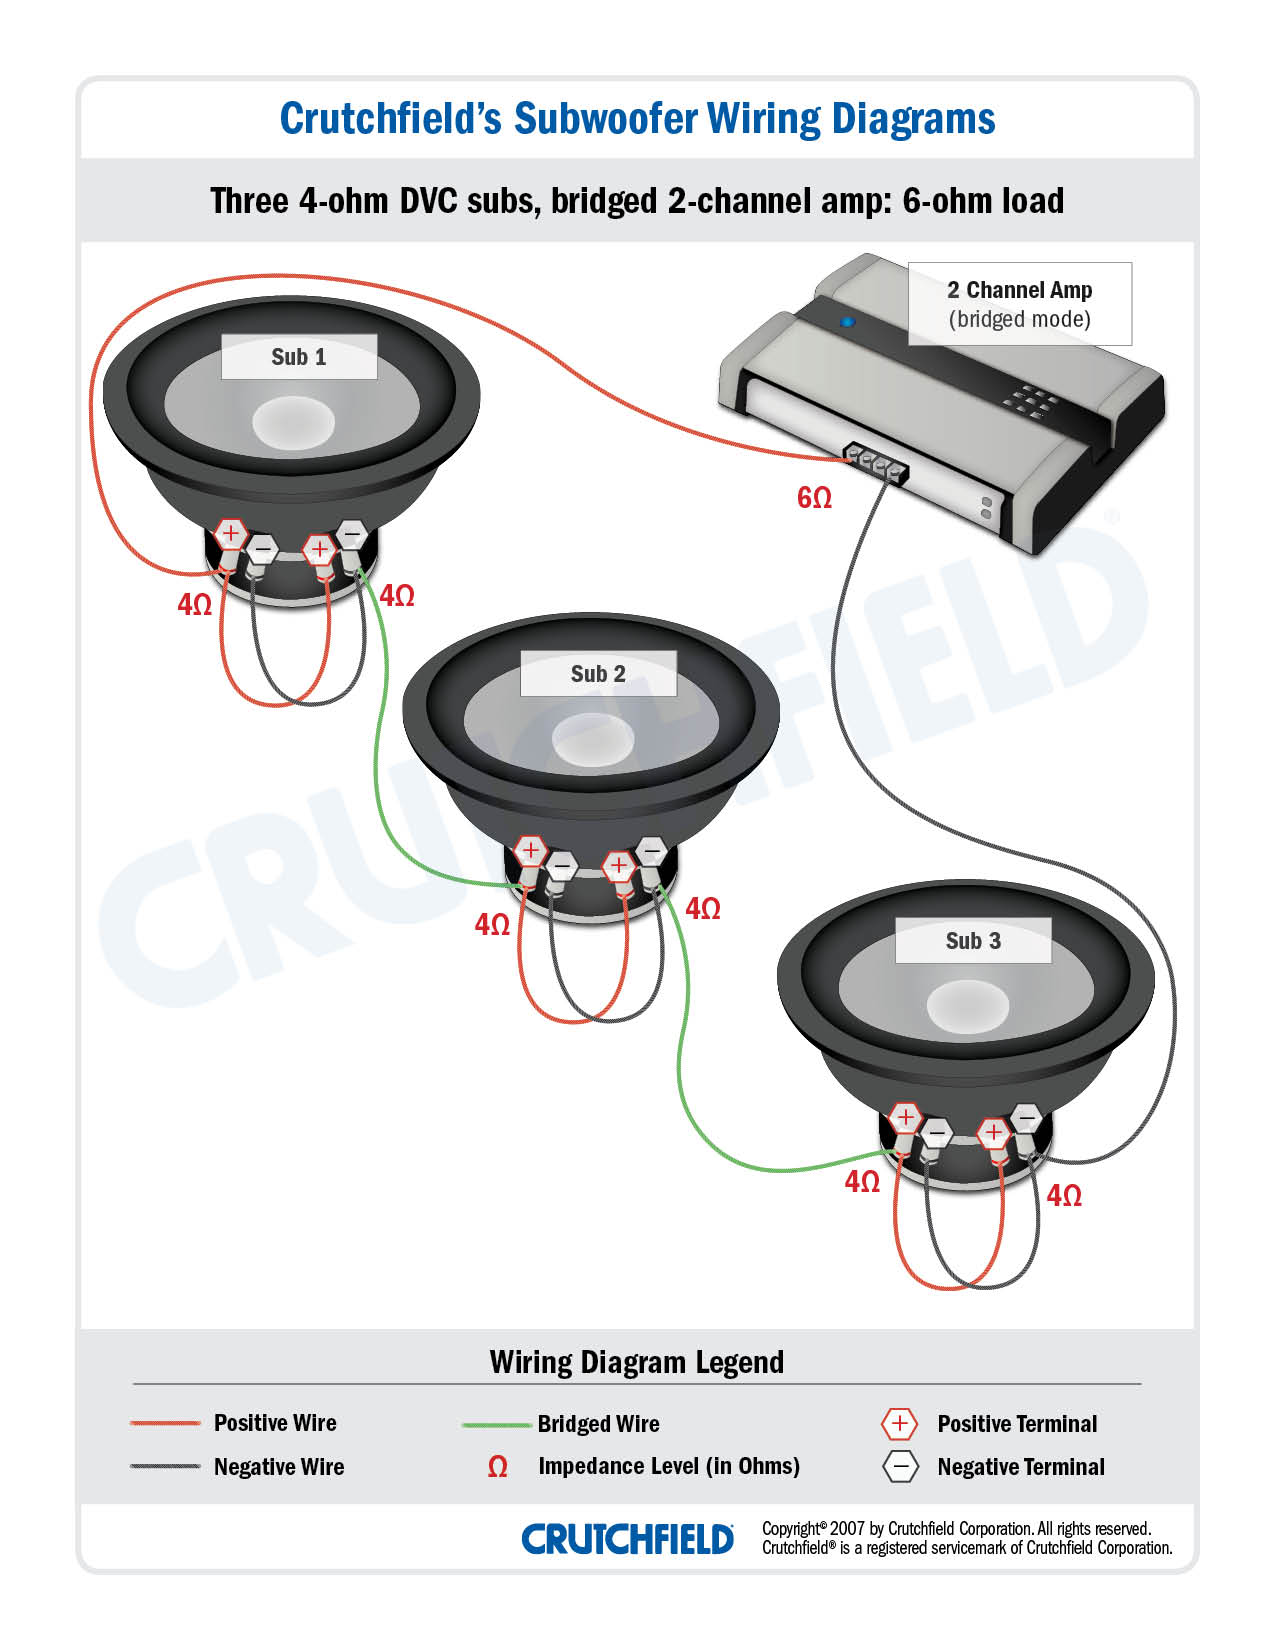 3 DVC 4 ohm 2 ch wiring subwoofers what's all this about ohms? crutchfield subwoofer wiring diagram at bayanpartner.co